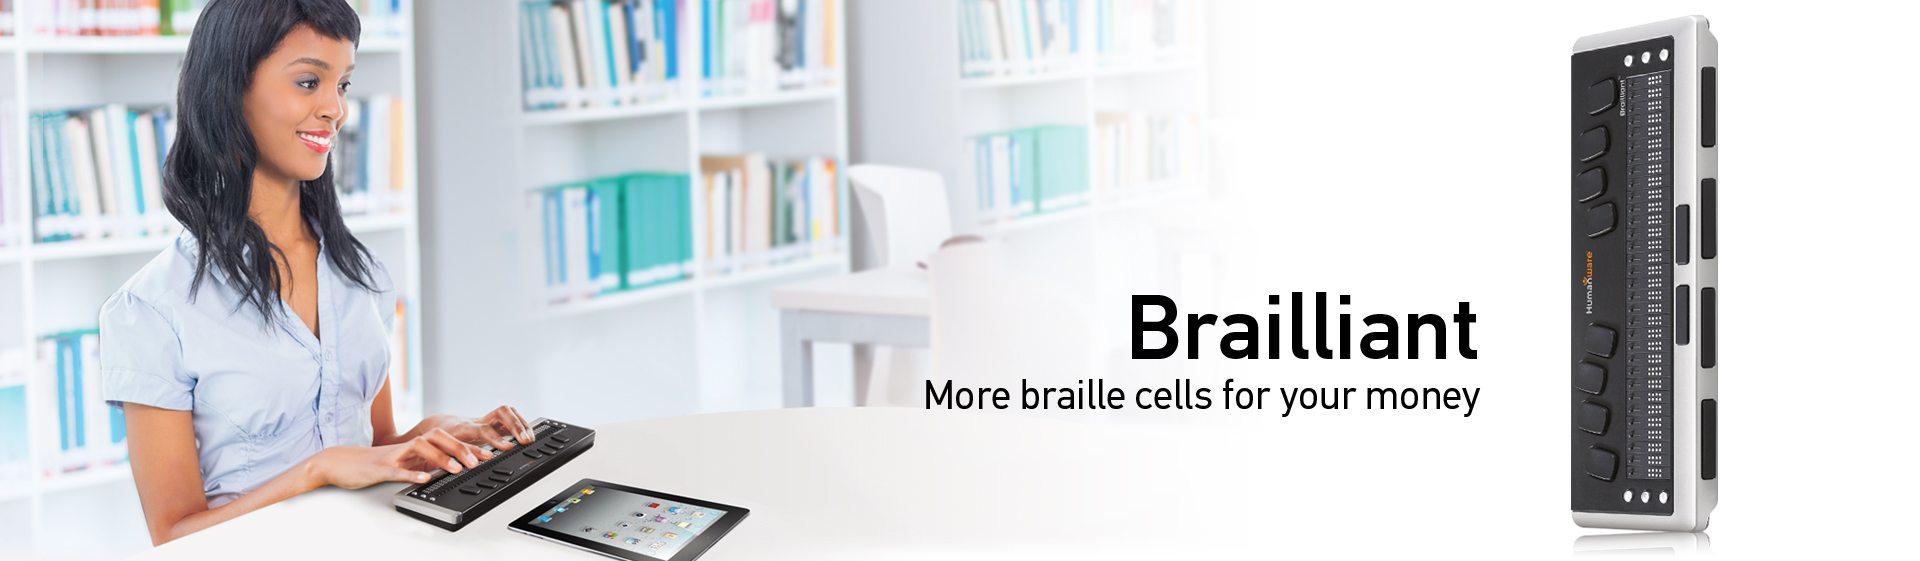 Brailliant braille displays - More braille cells for your money